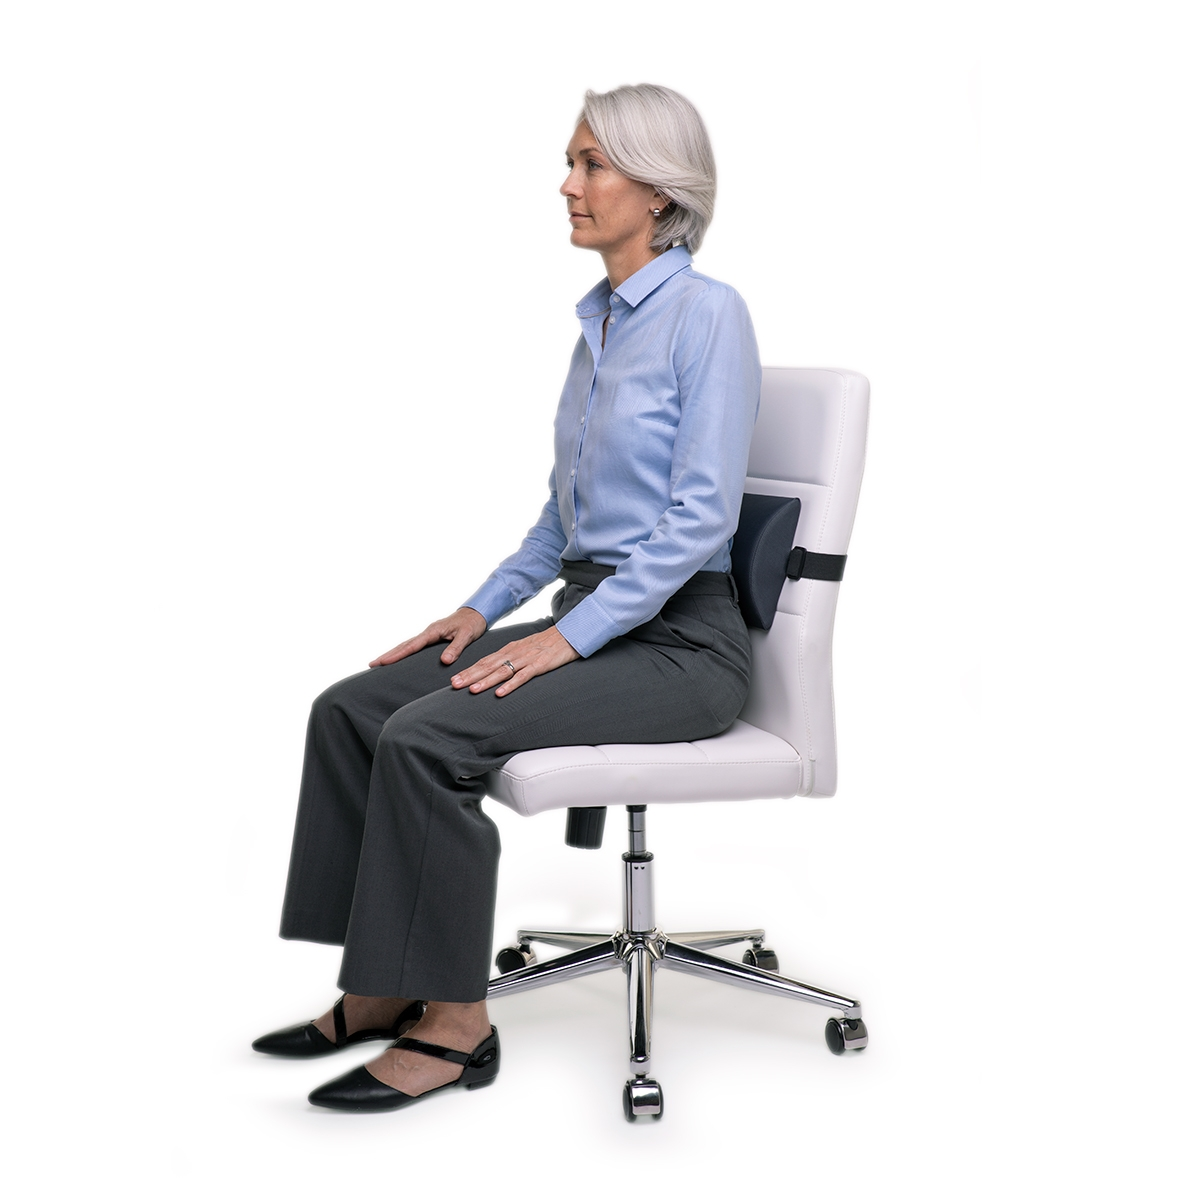 Balance Cushion For Chair Original McKenzie Slimline Lumbar Support used in office chair